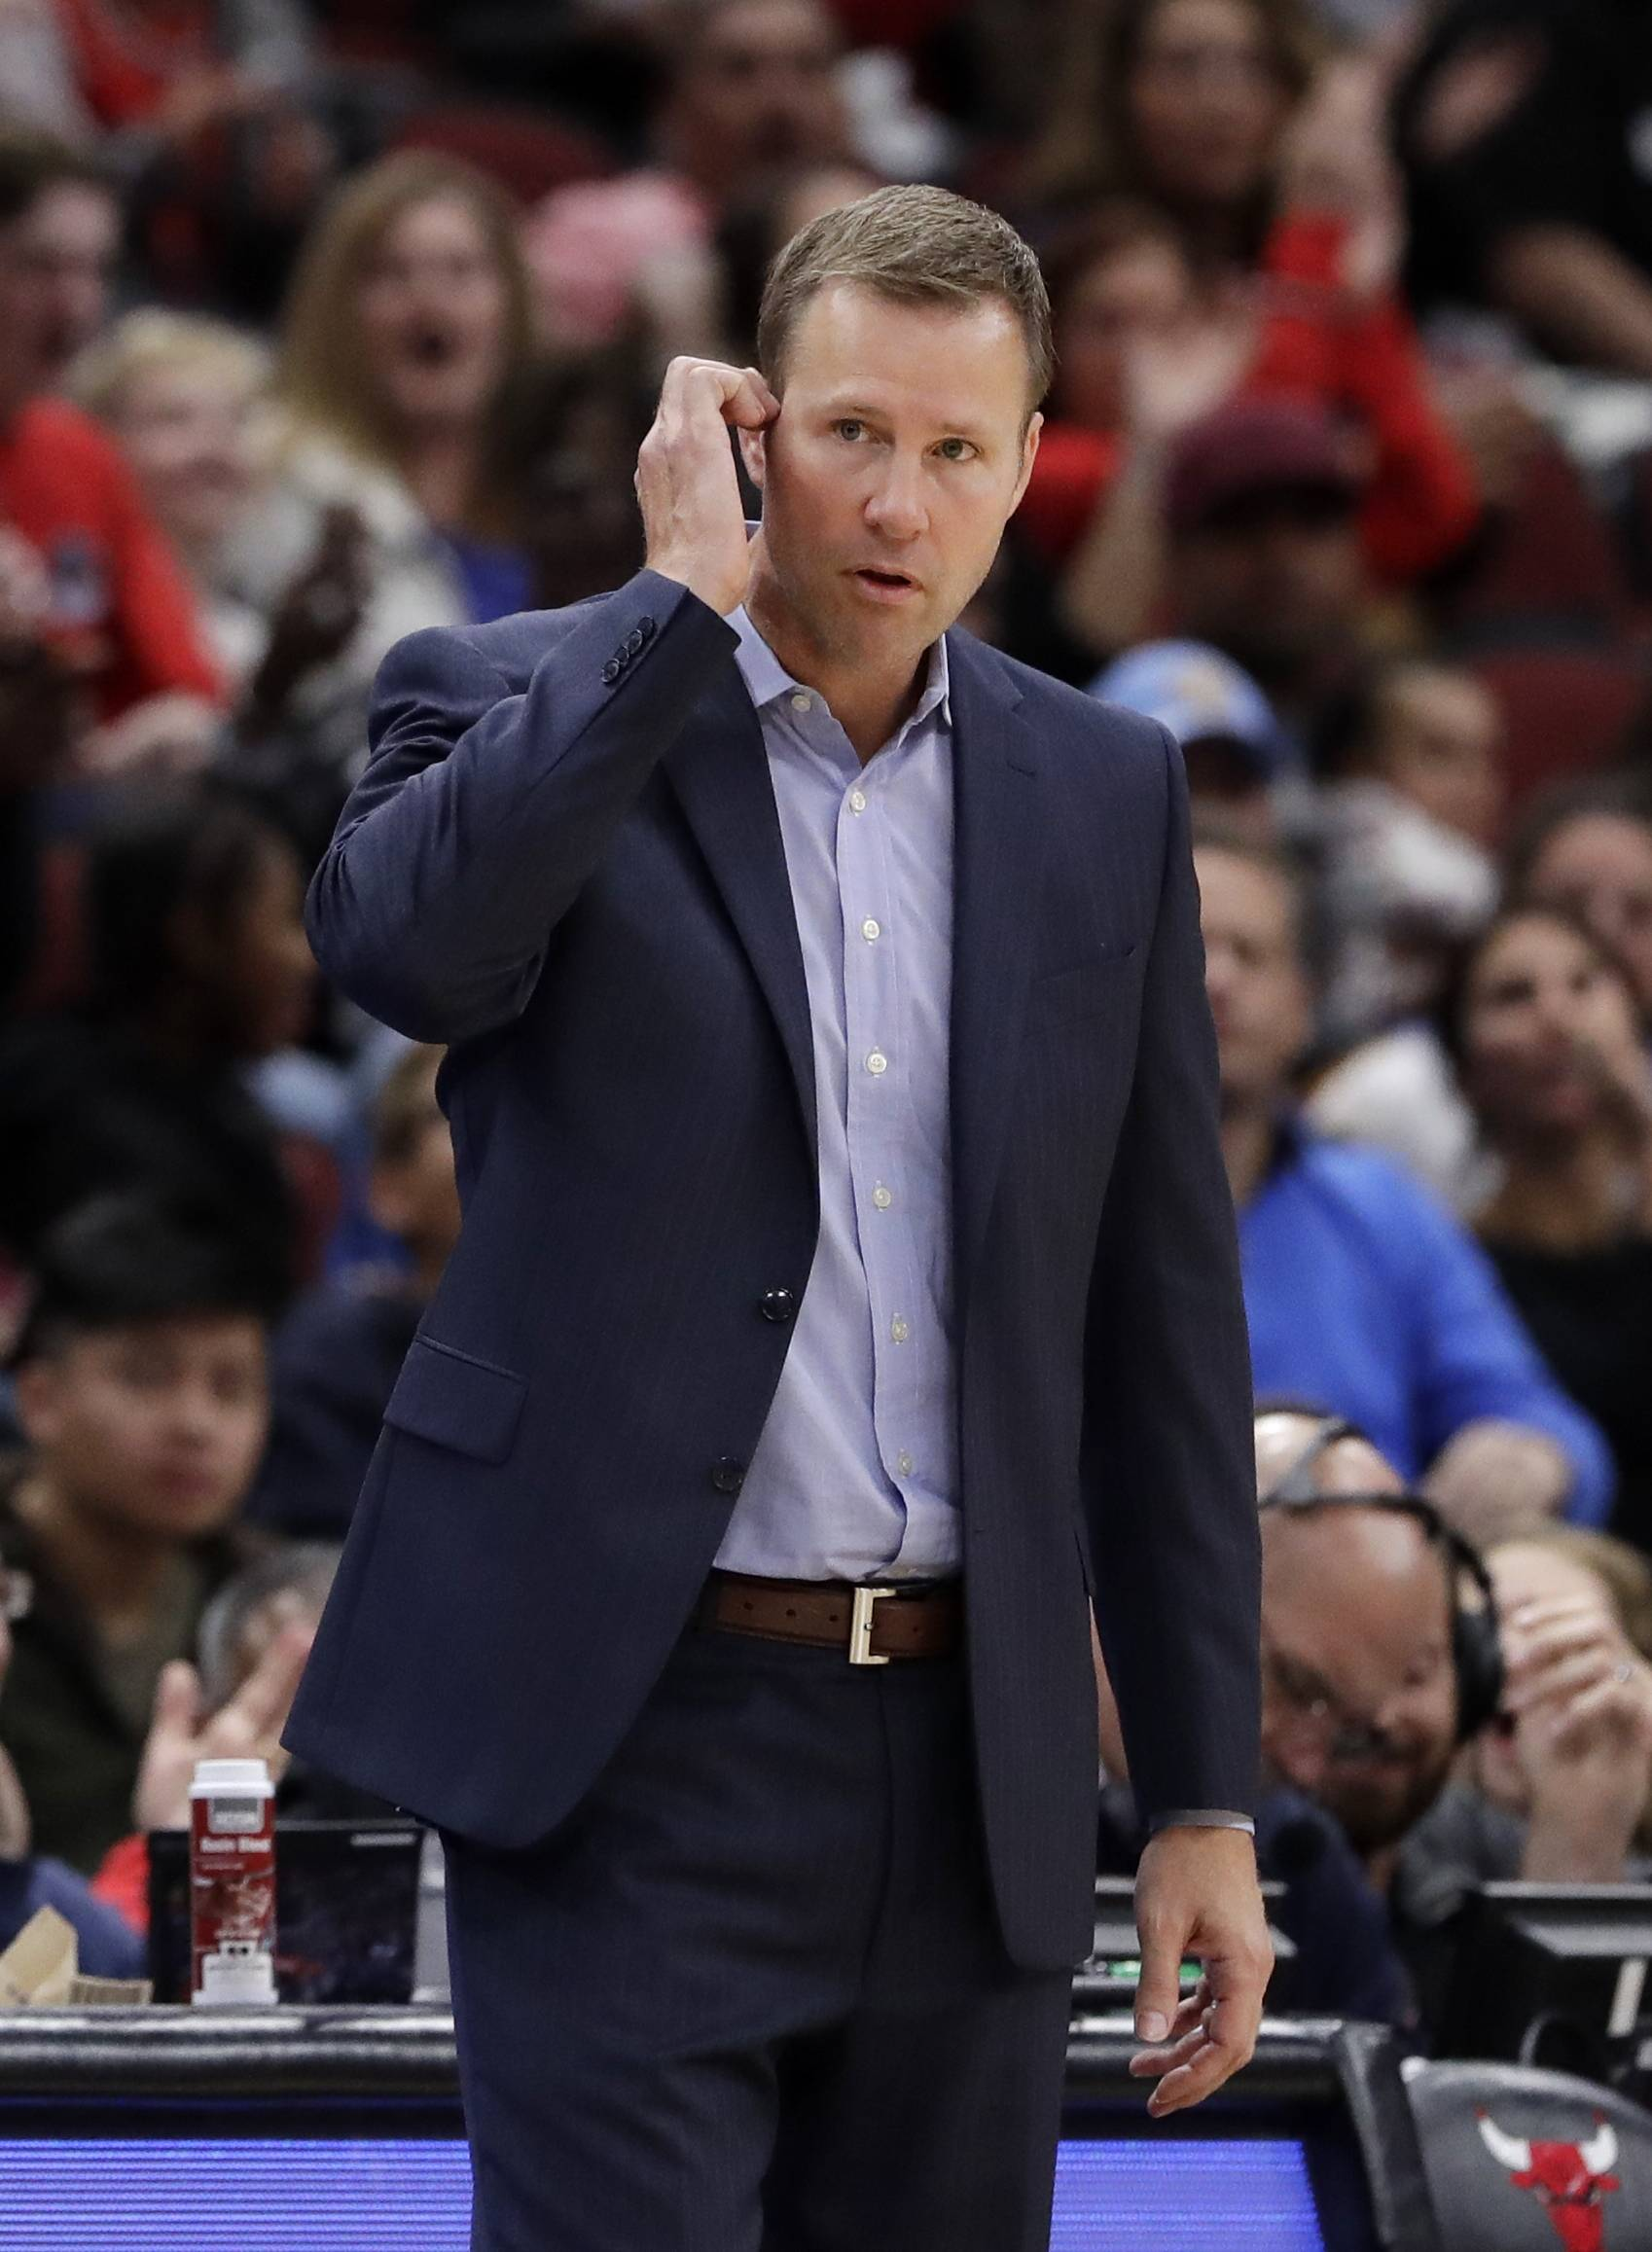 Chicago Bulls coach Fred Hoiberg watches his team during the second half of an NBA preseason basketball game against the Denver Nuggets, Friday, Oct. 12, 2018, in Chicago. (AP Photo/Nam Y. Huh)